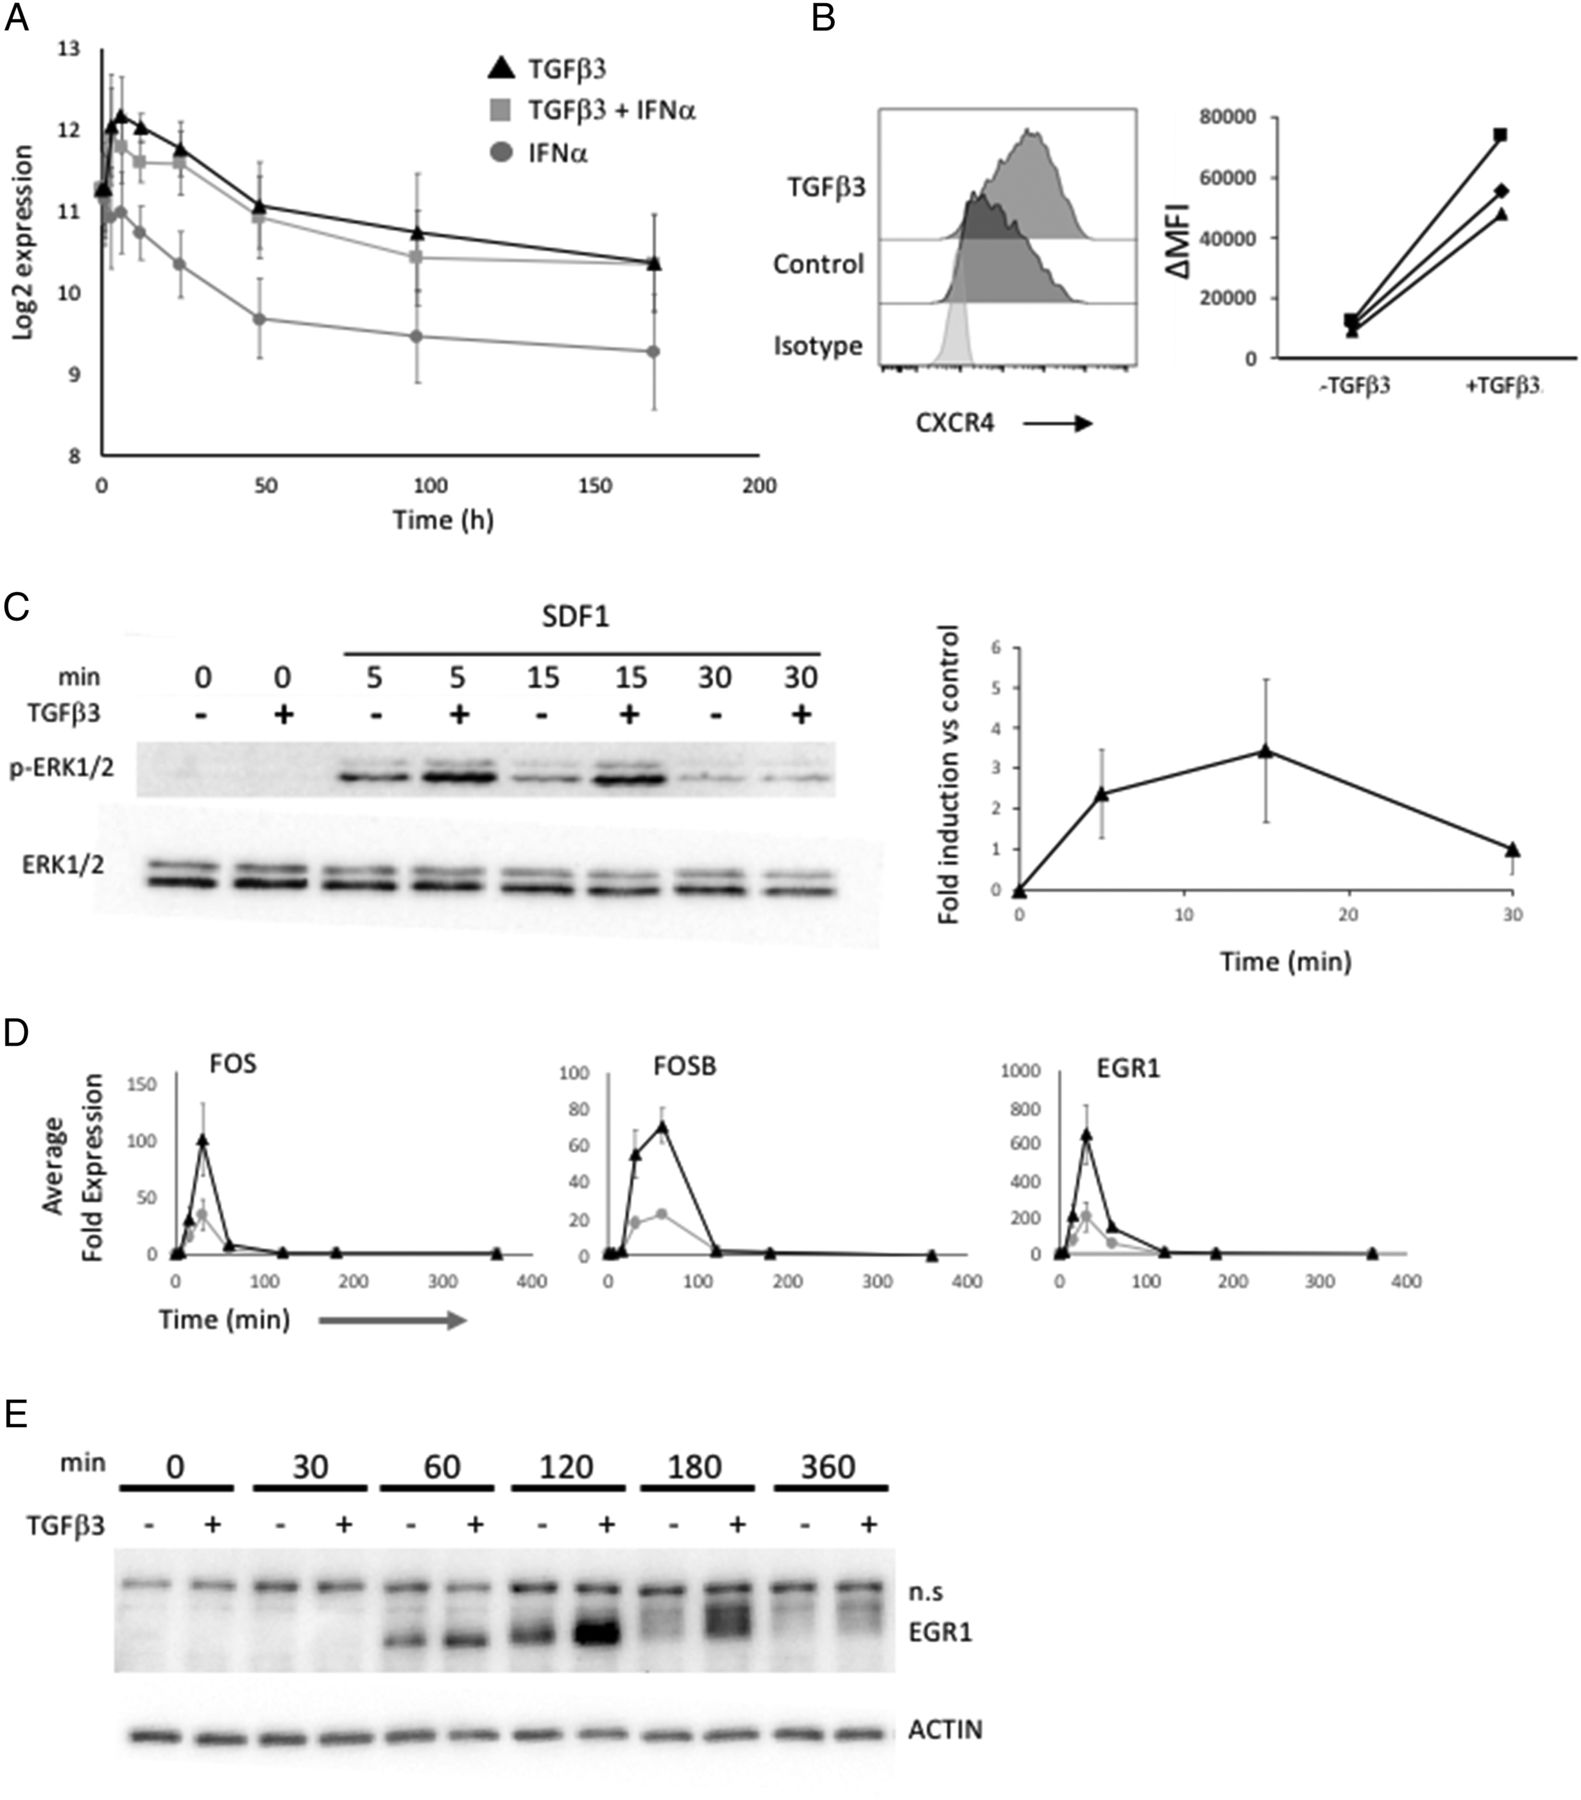 Growth Factor–like Gene Regulation Is Separable from Survival and